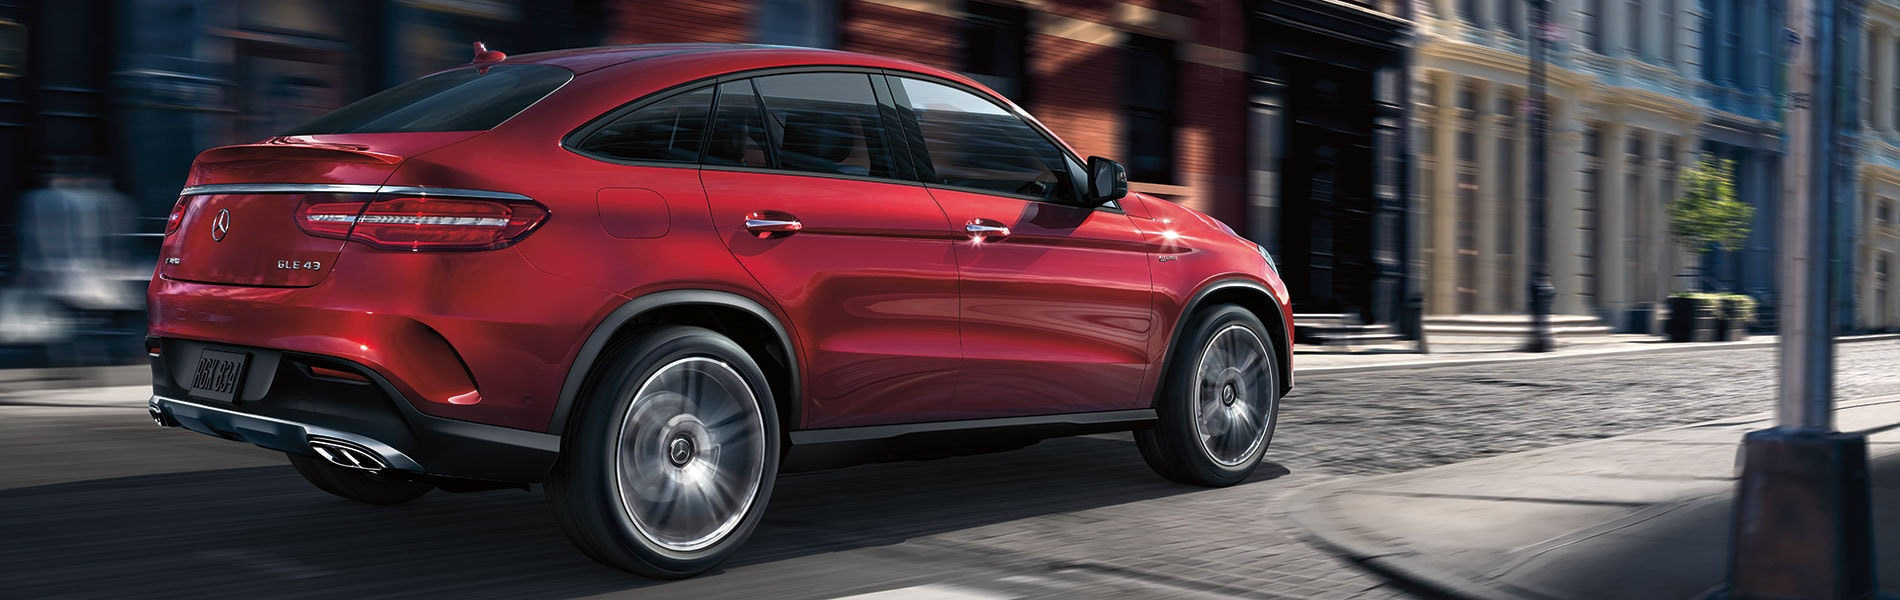 Mercedes Benz GLE Exterior Vehicle Features